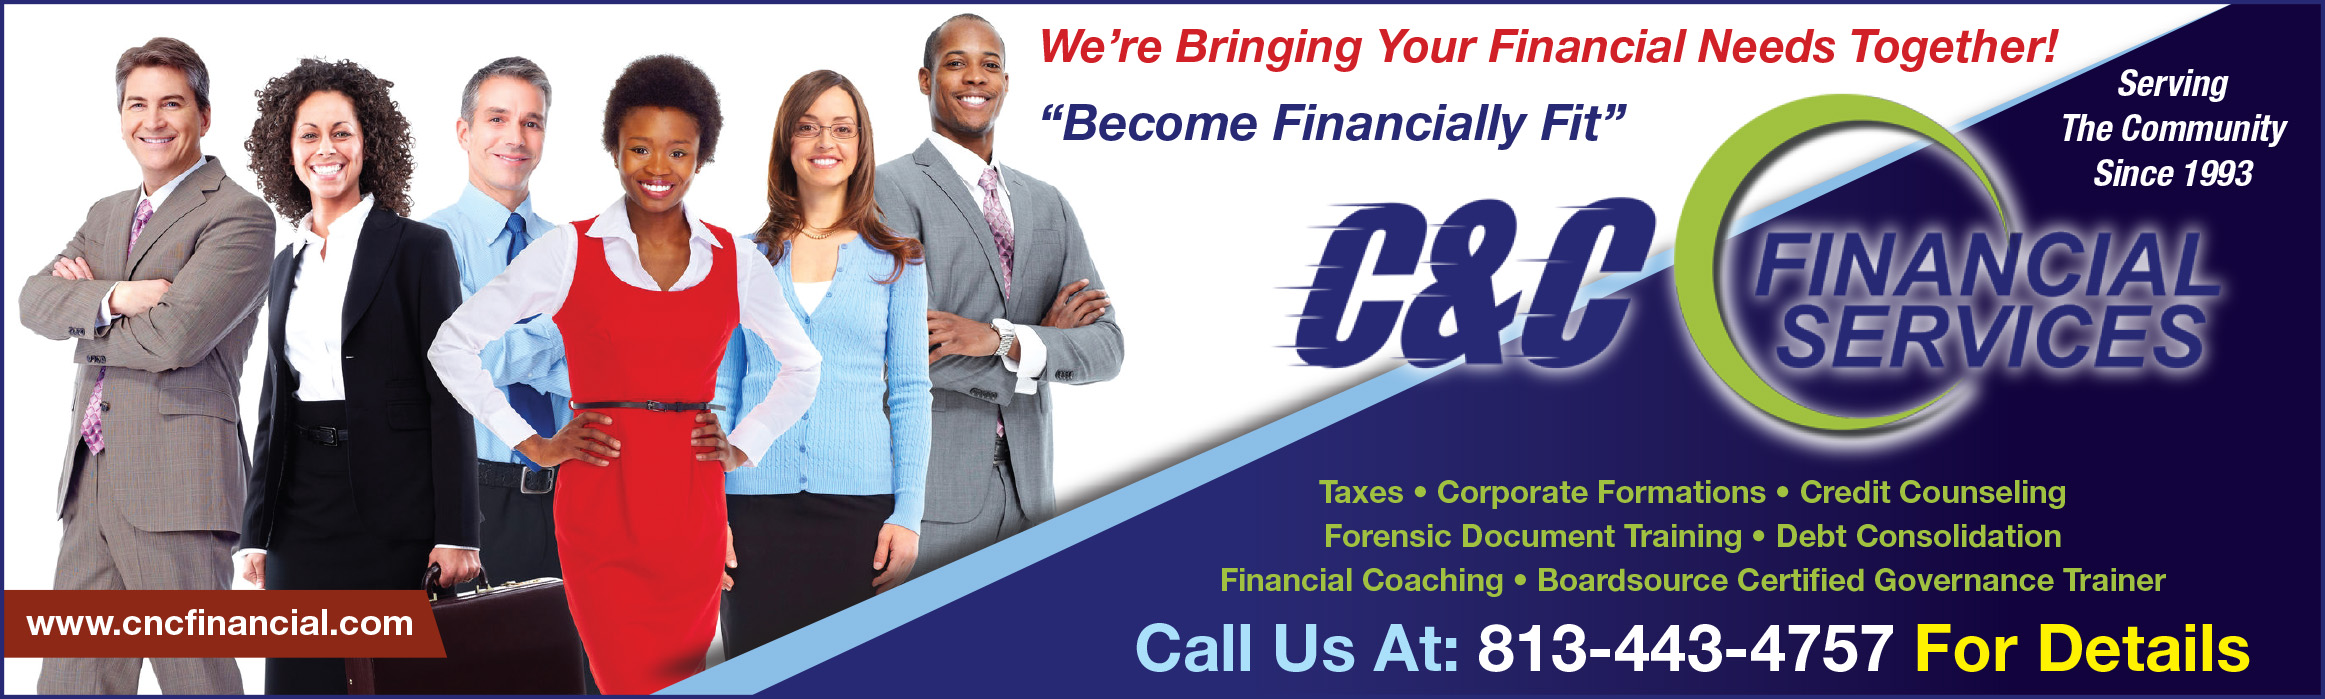 C&C Financial